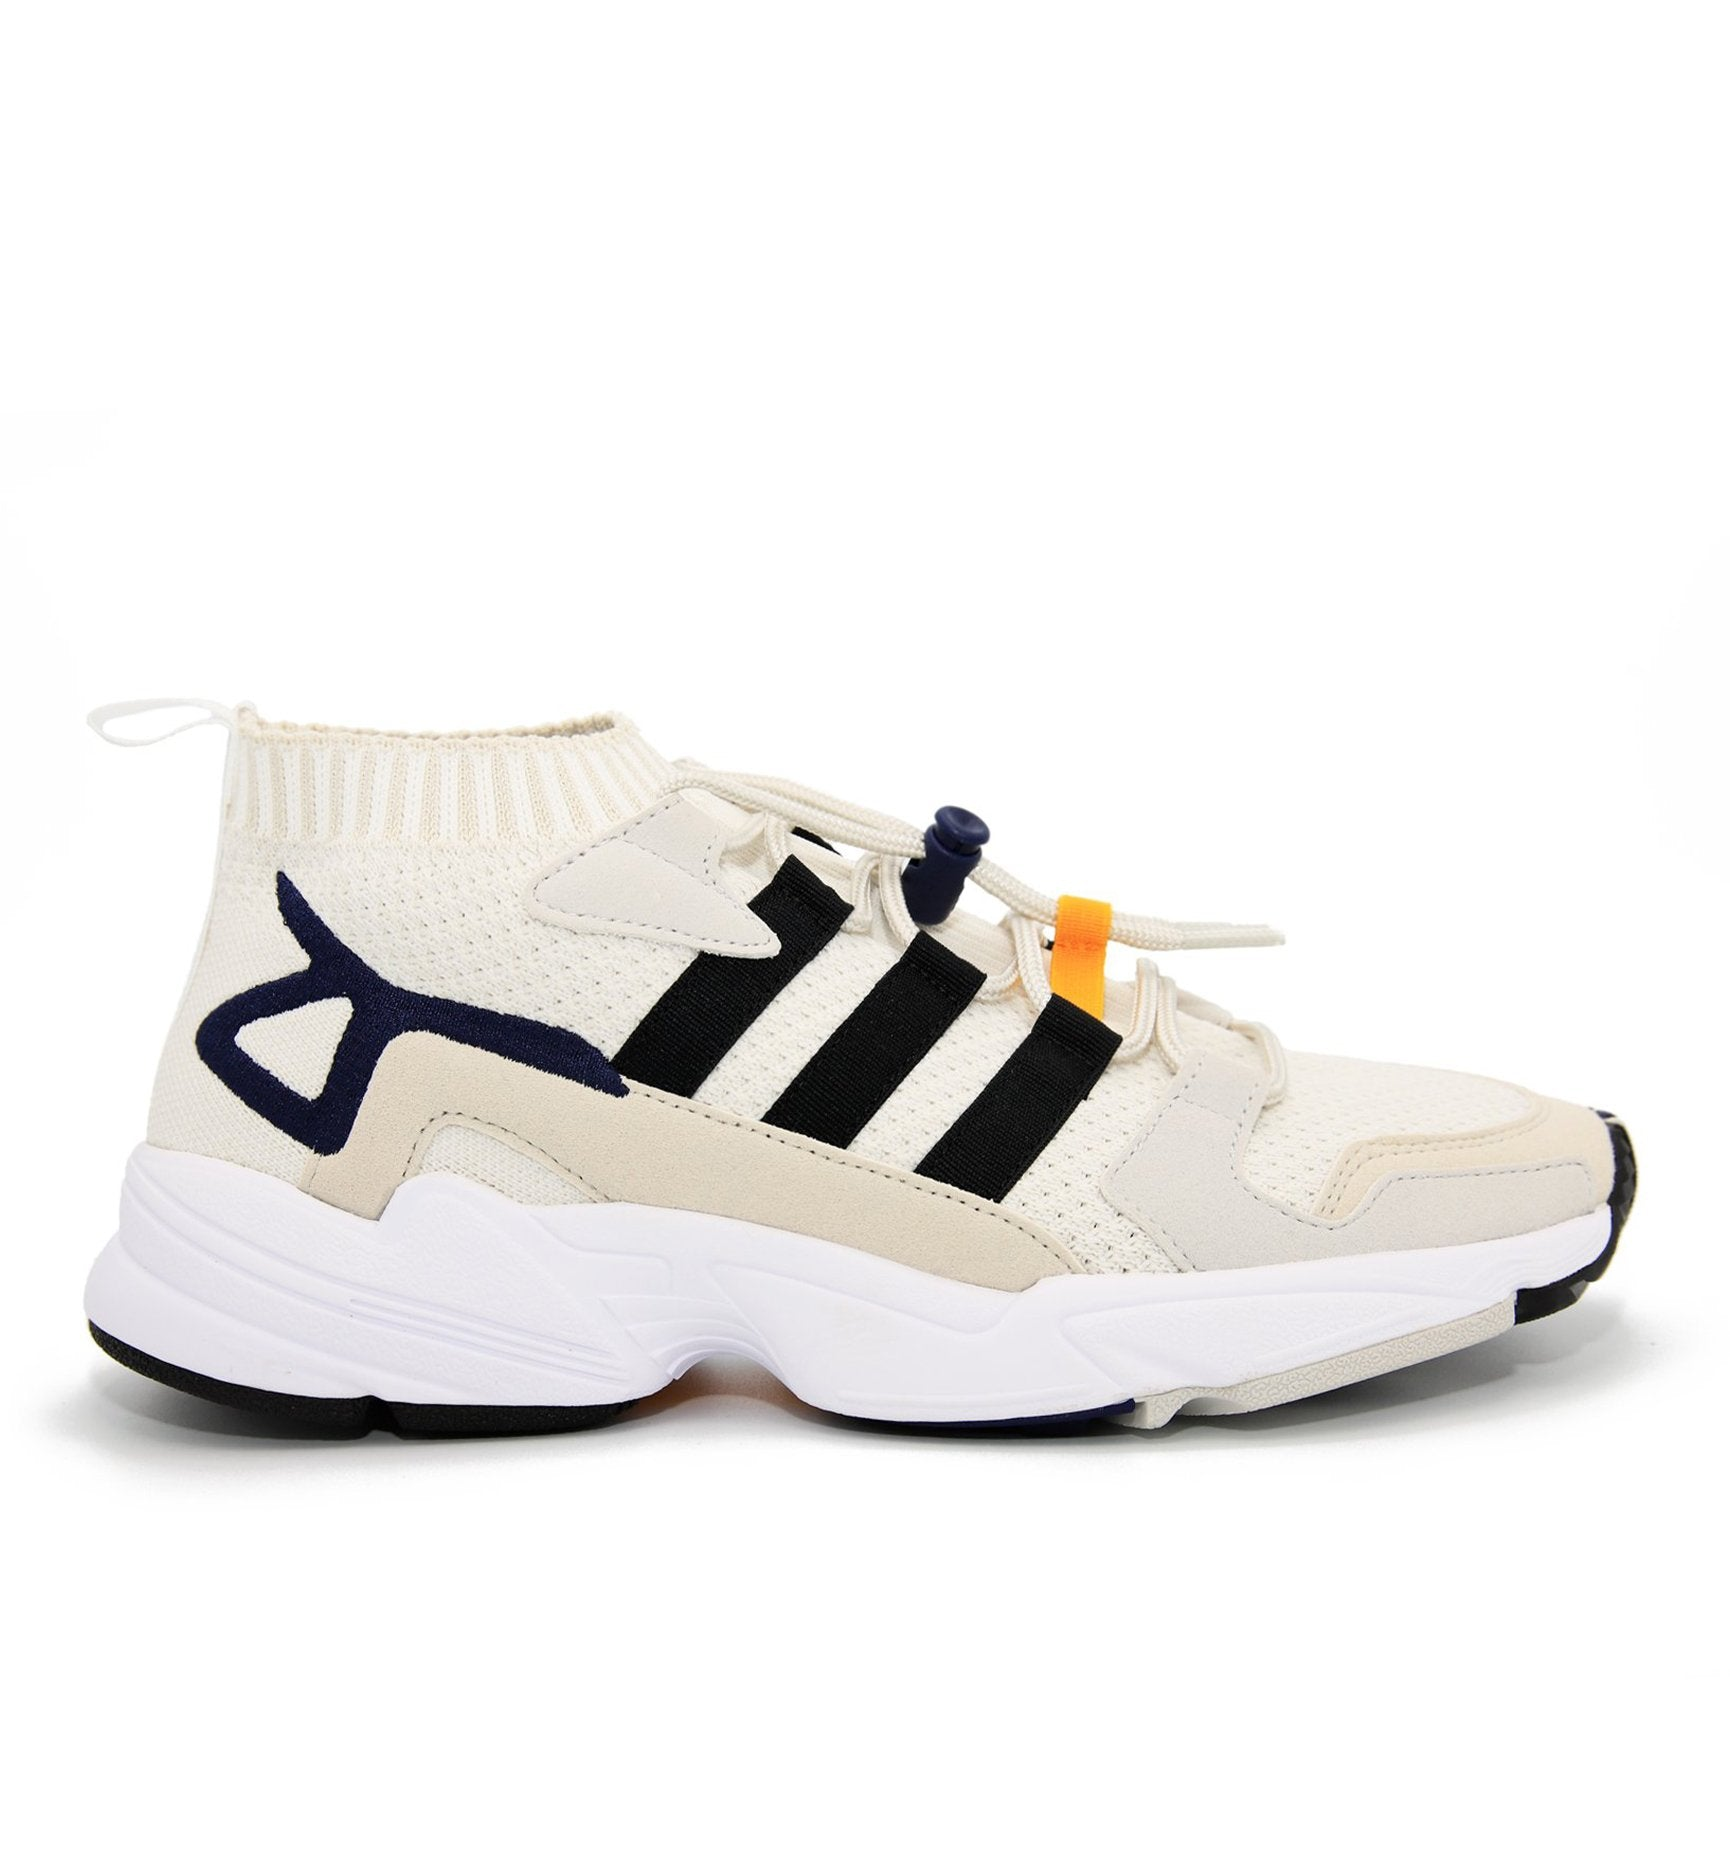 adidas Falcon Workshop in Off-White